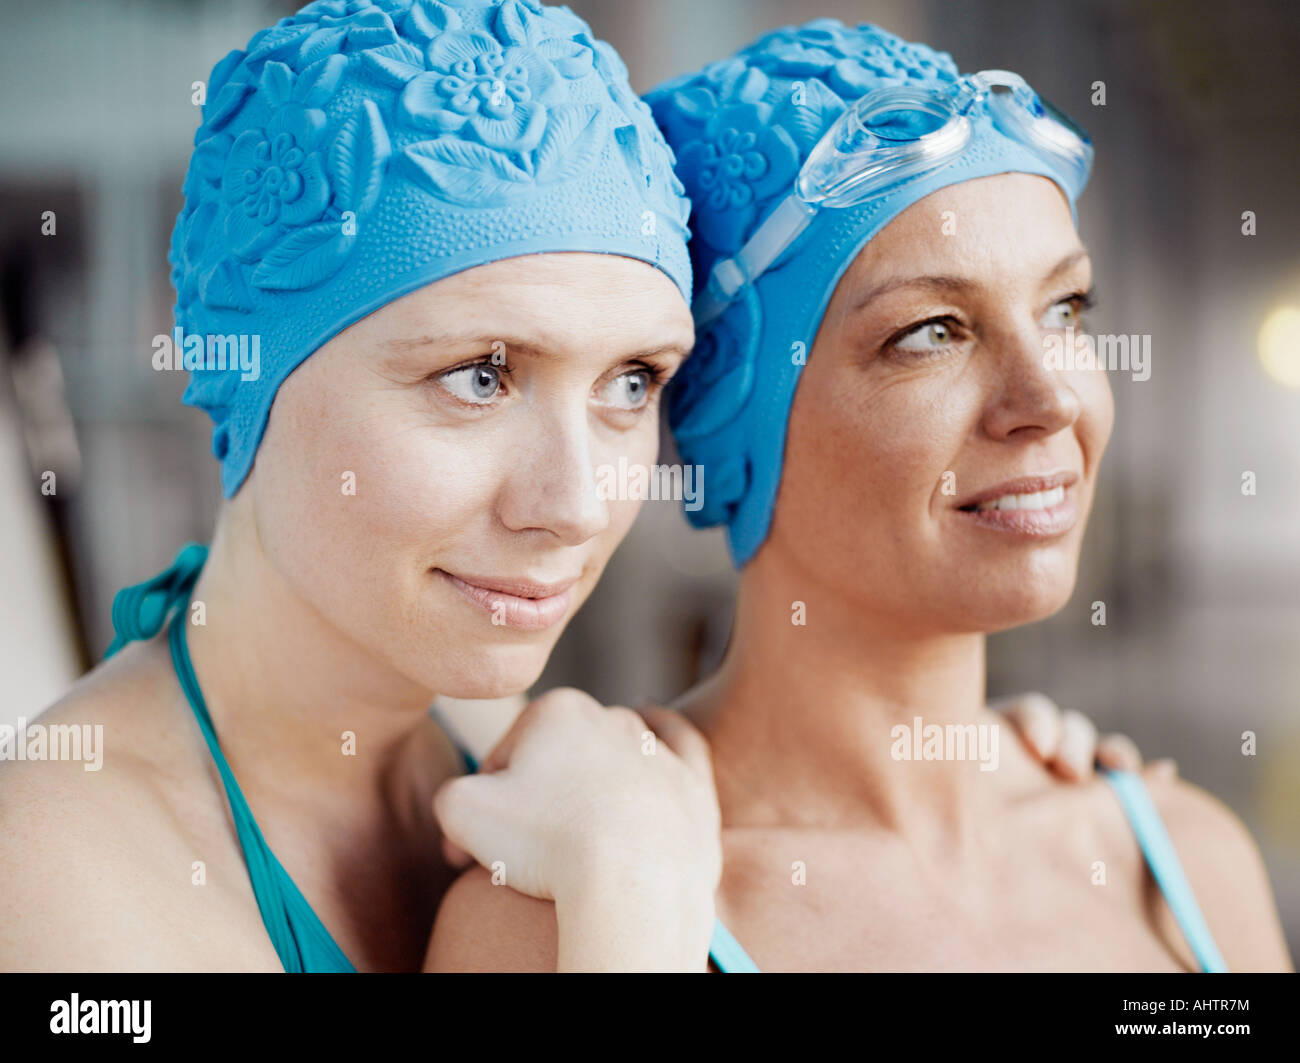 Two women wearing swimming caps and bathing suits efcb1d066